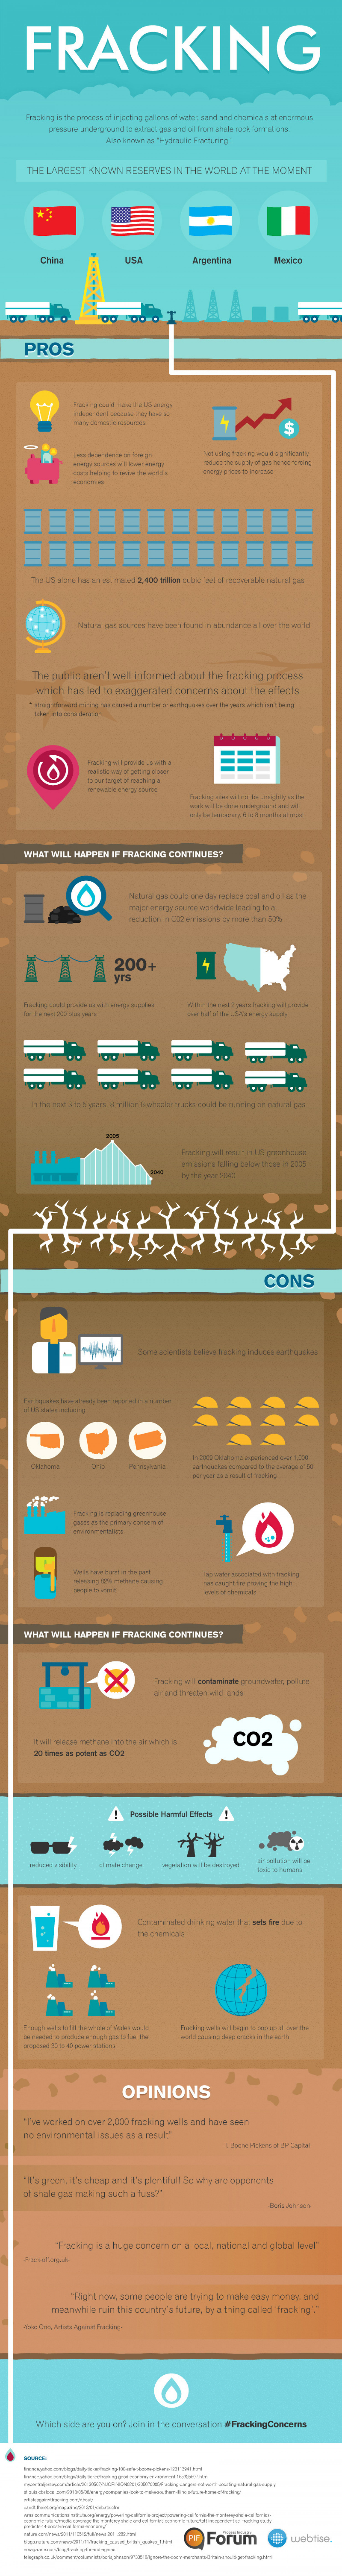 An introduction to fracking Infographic